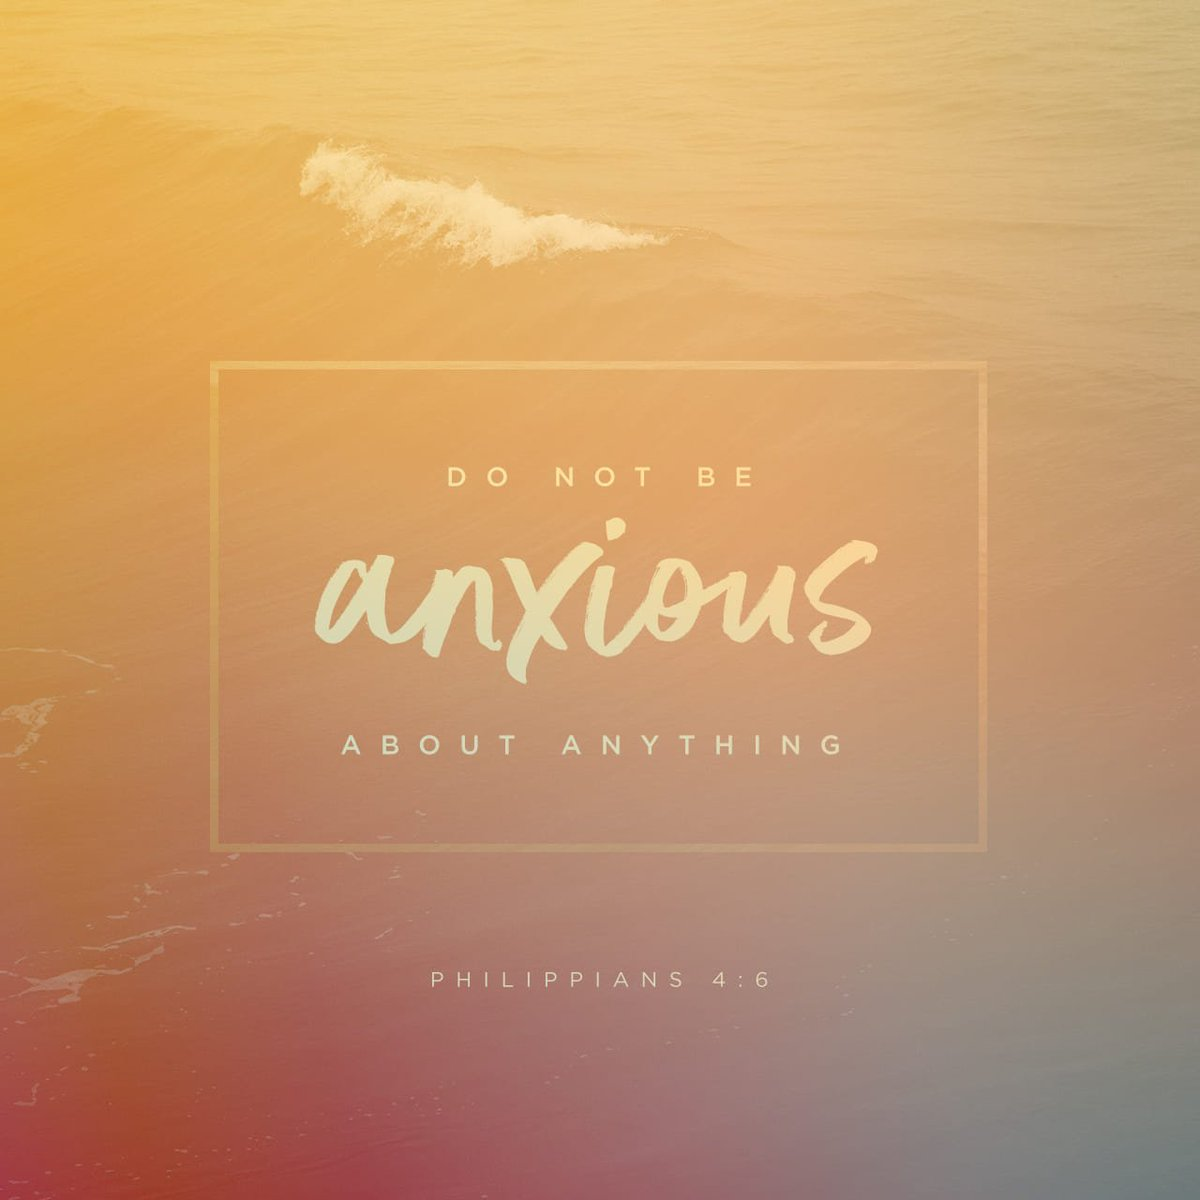 Are you feeling anxious as you start a new week? Don't go it alone! Start the week off on the right foot:  Encounter God in a fresh way and jump into a 7 day Bible reading plan.  Follow the link here: https://buff.ly/2ucbs4U  #anxiousfornothing #youversion #bibleapp #readingplanpic.twitter.com/ODCnFrnf59